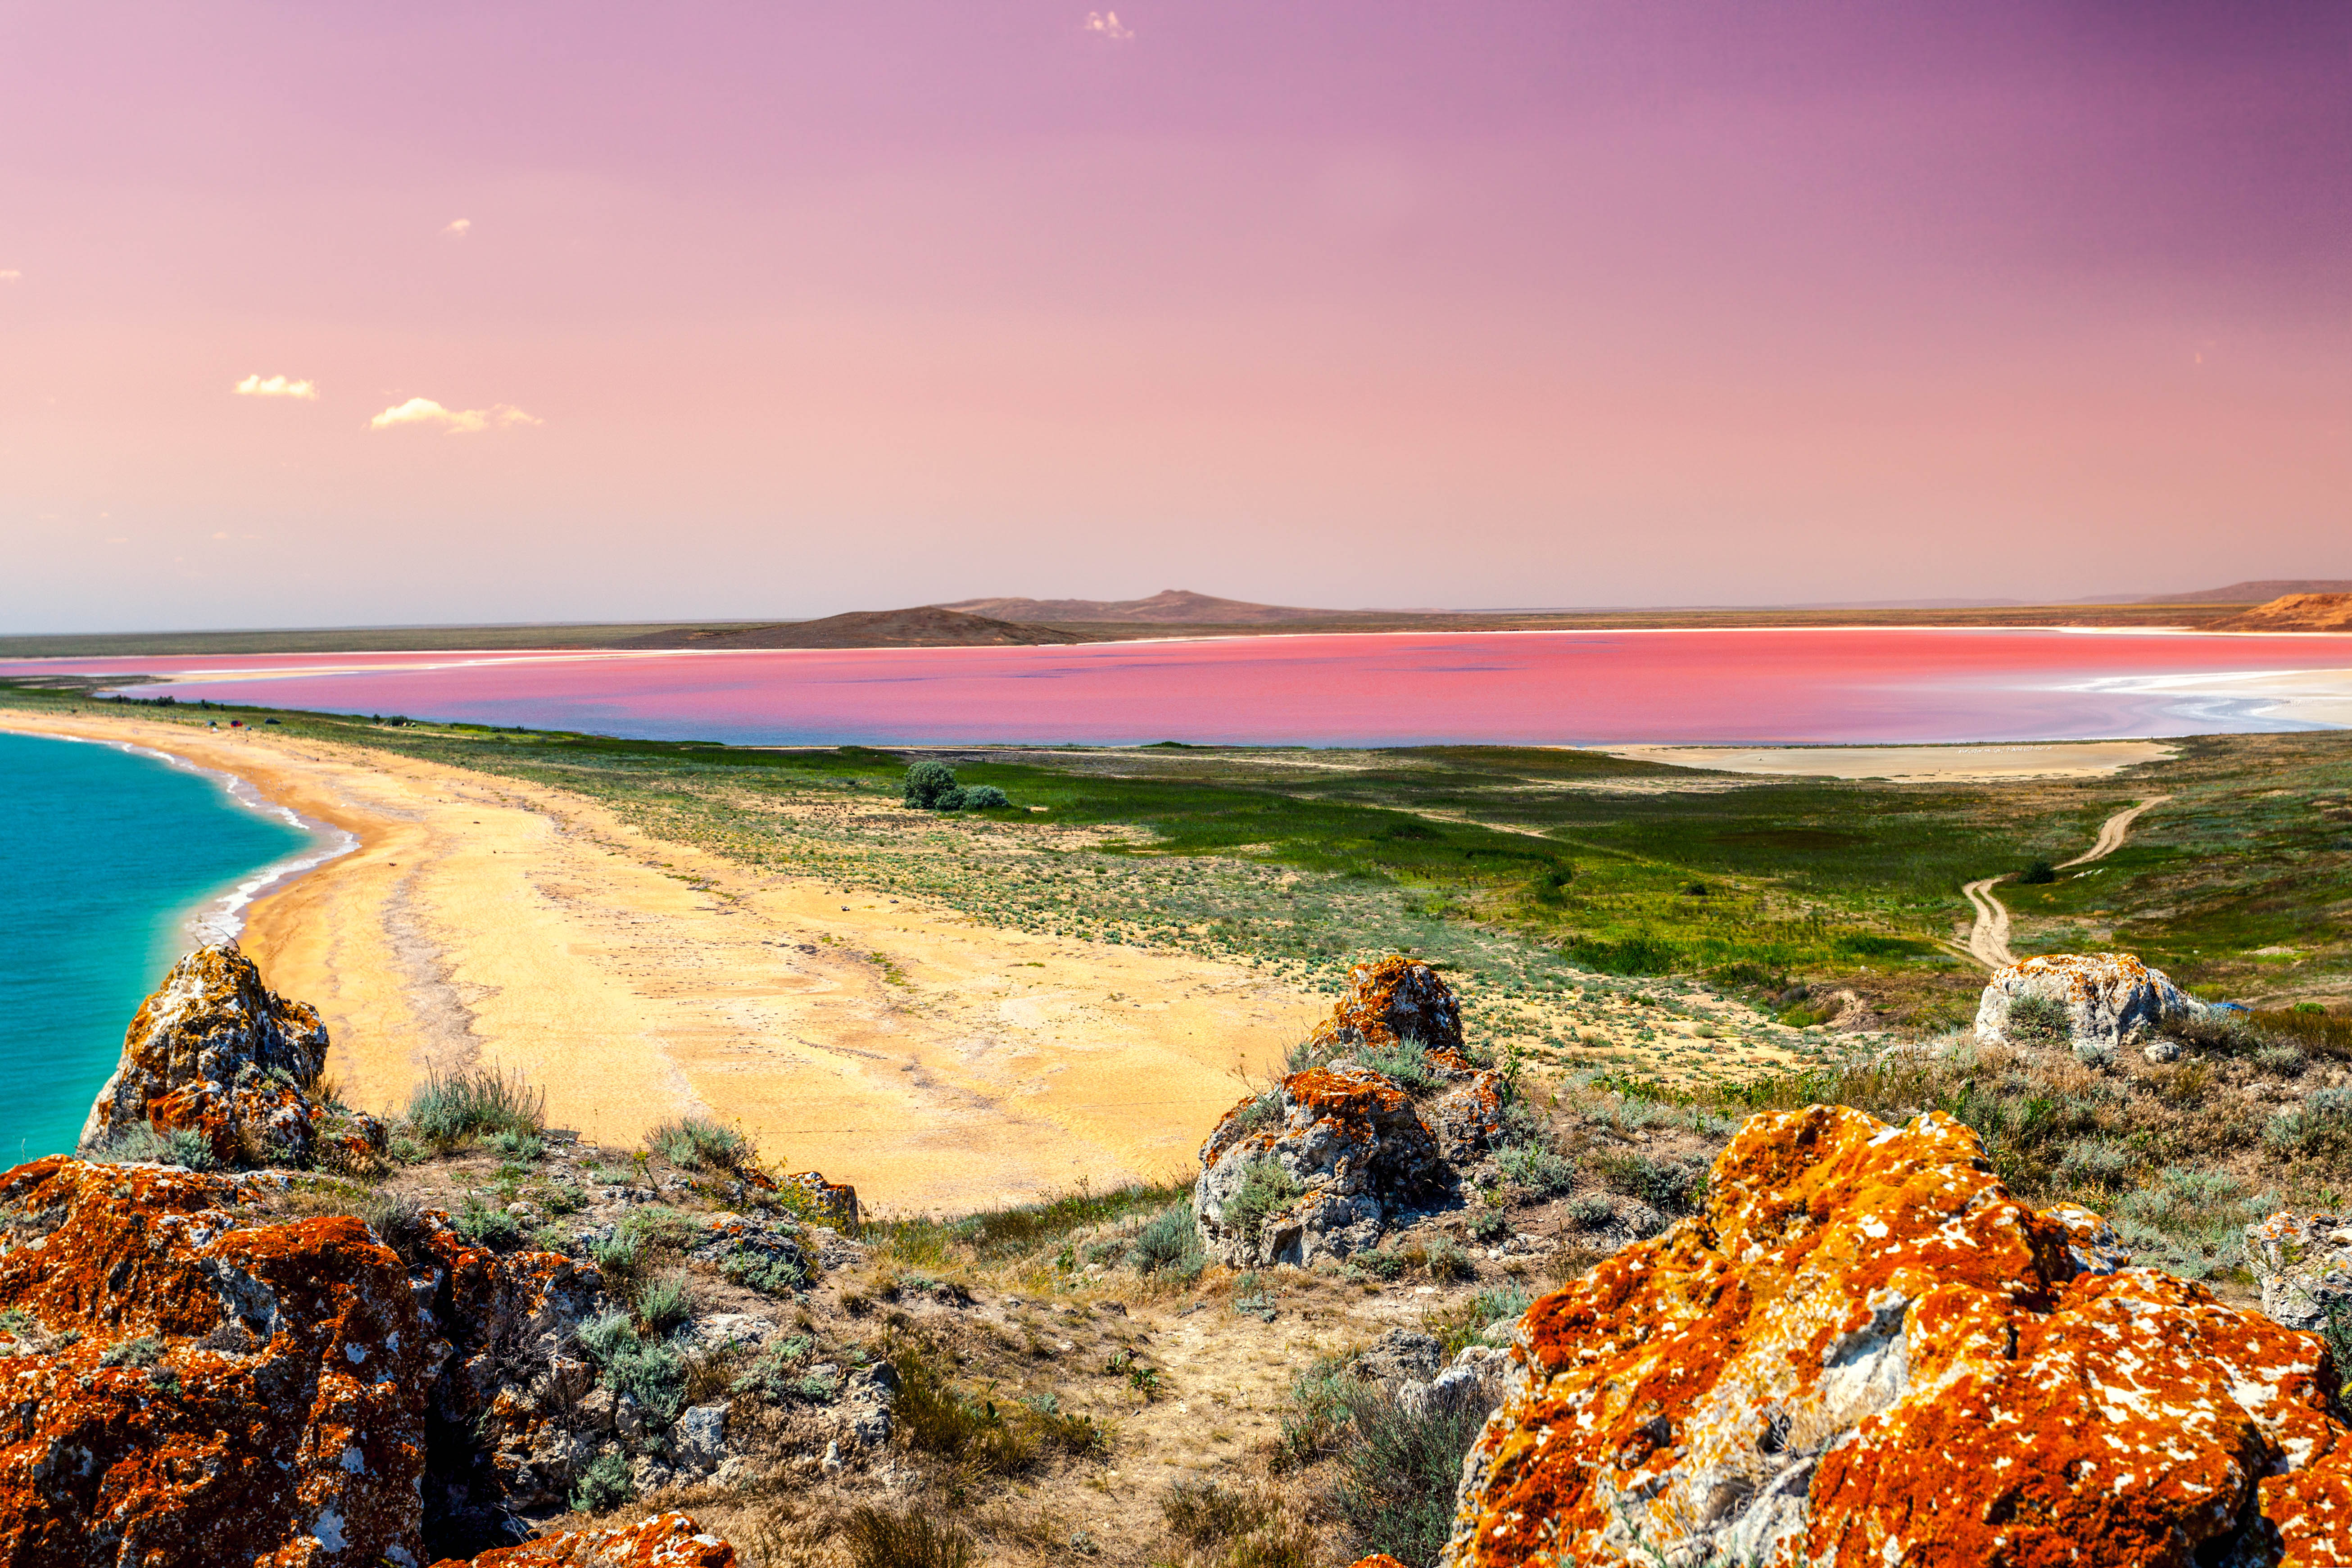 der pinke Lake Hillier in Westaustralien